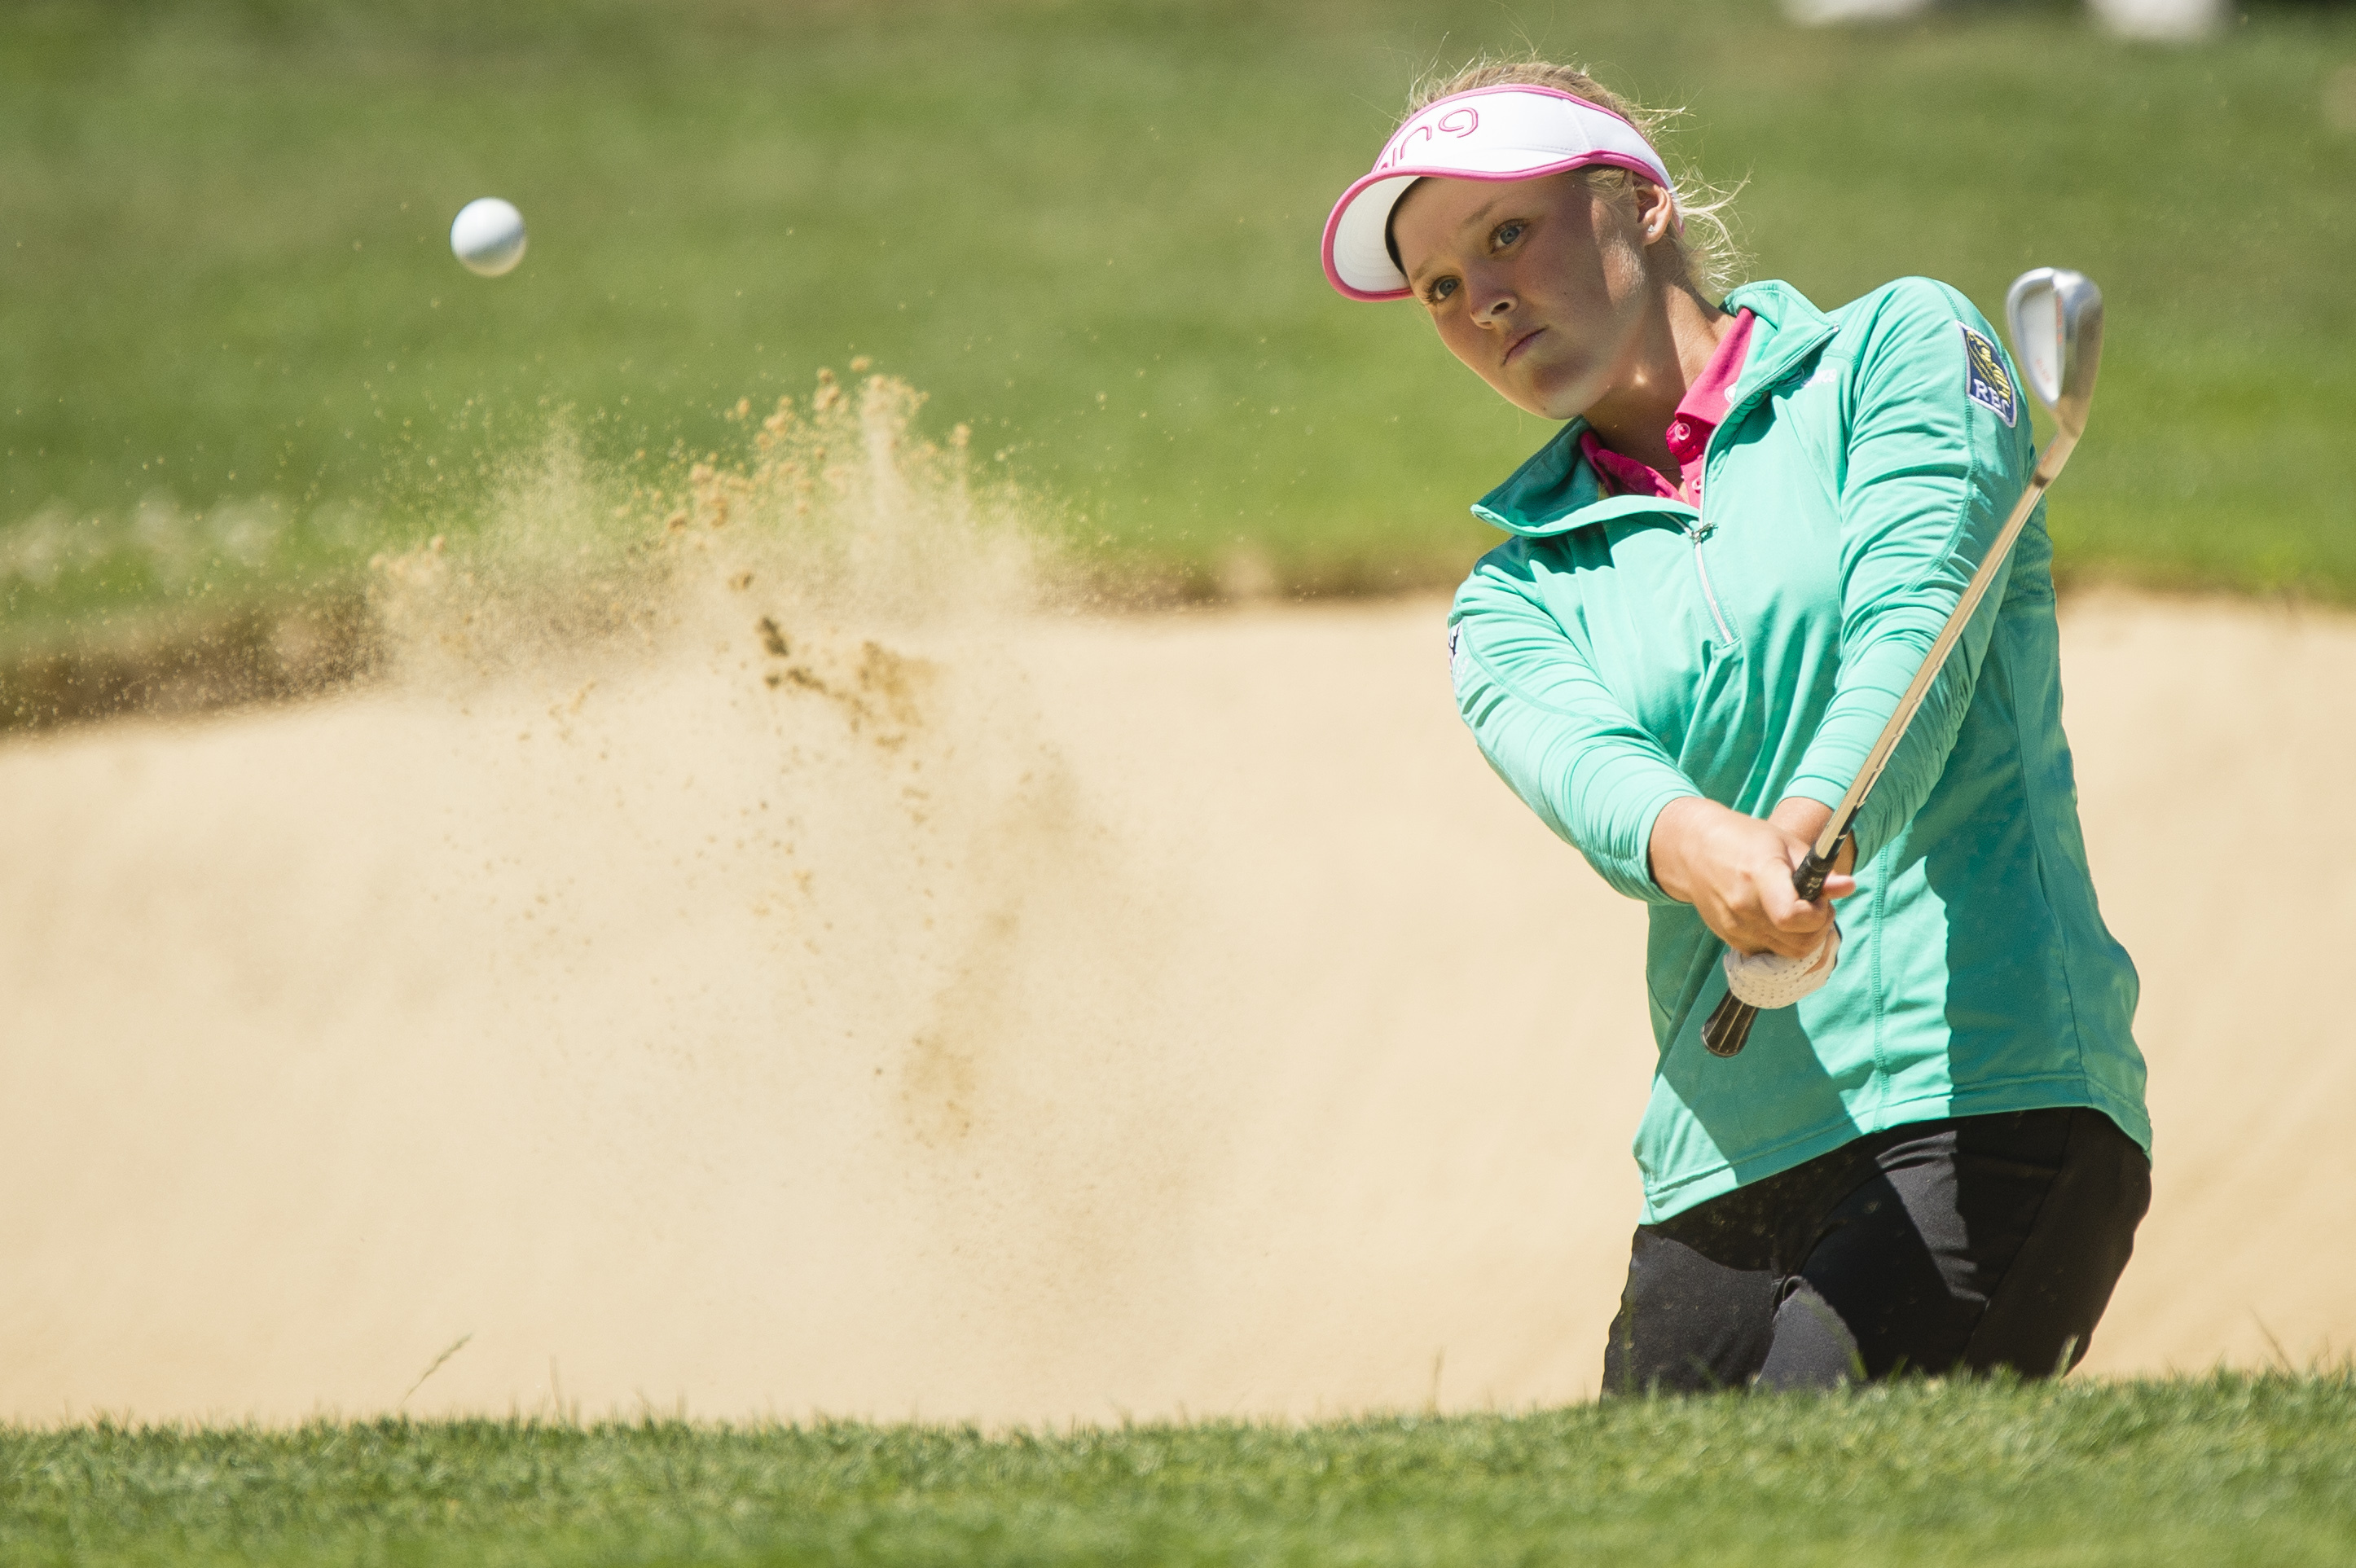 Brooke Henderson, of Canada, hits from a sand trap on the 12th hole at the LPGA Cambia Portland Classic golf tournament Sunday, July 3, 2016, in Portland, Ore. (AP Photo/Troy Wayrynen)